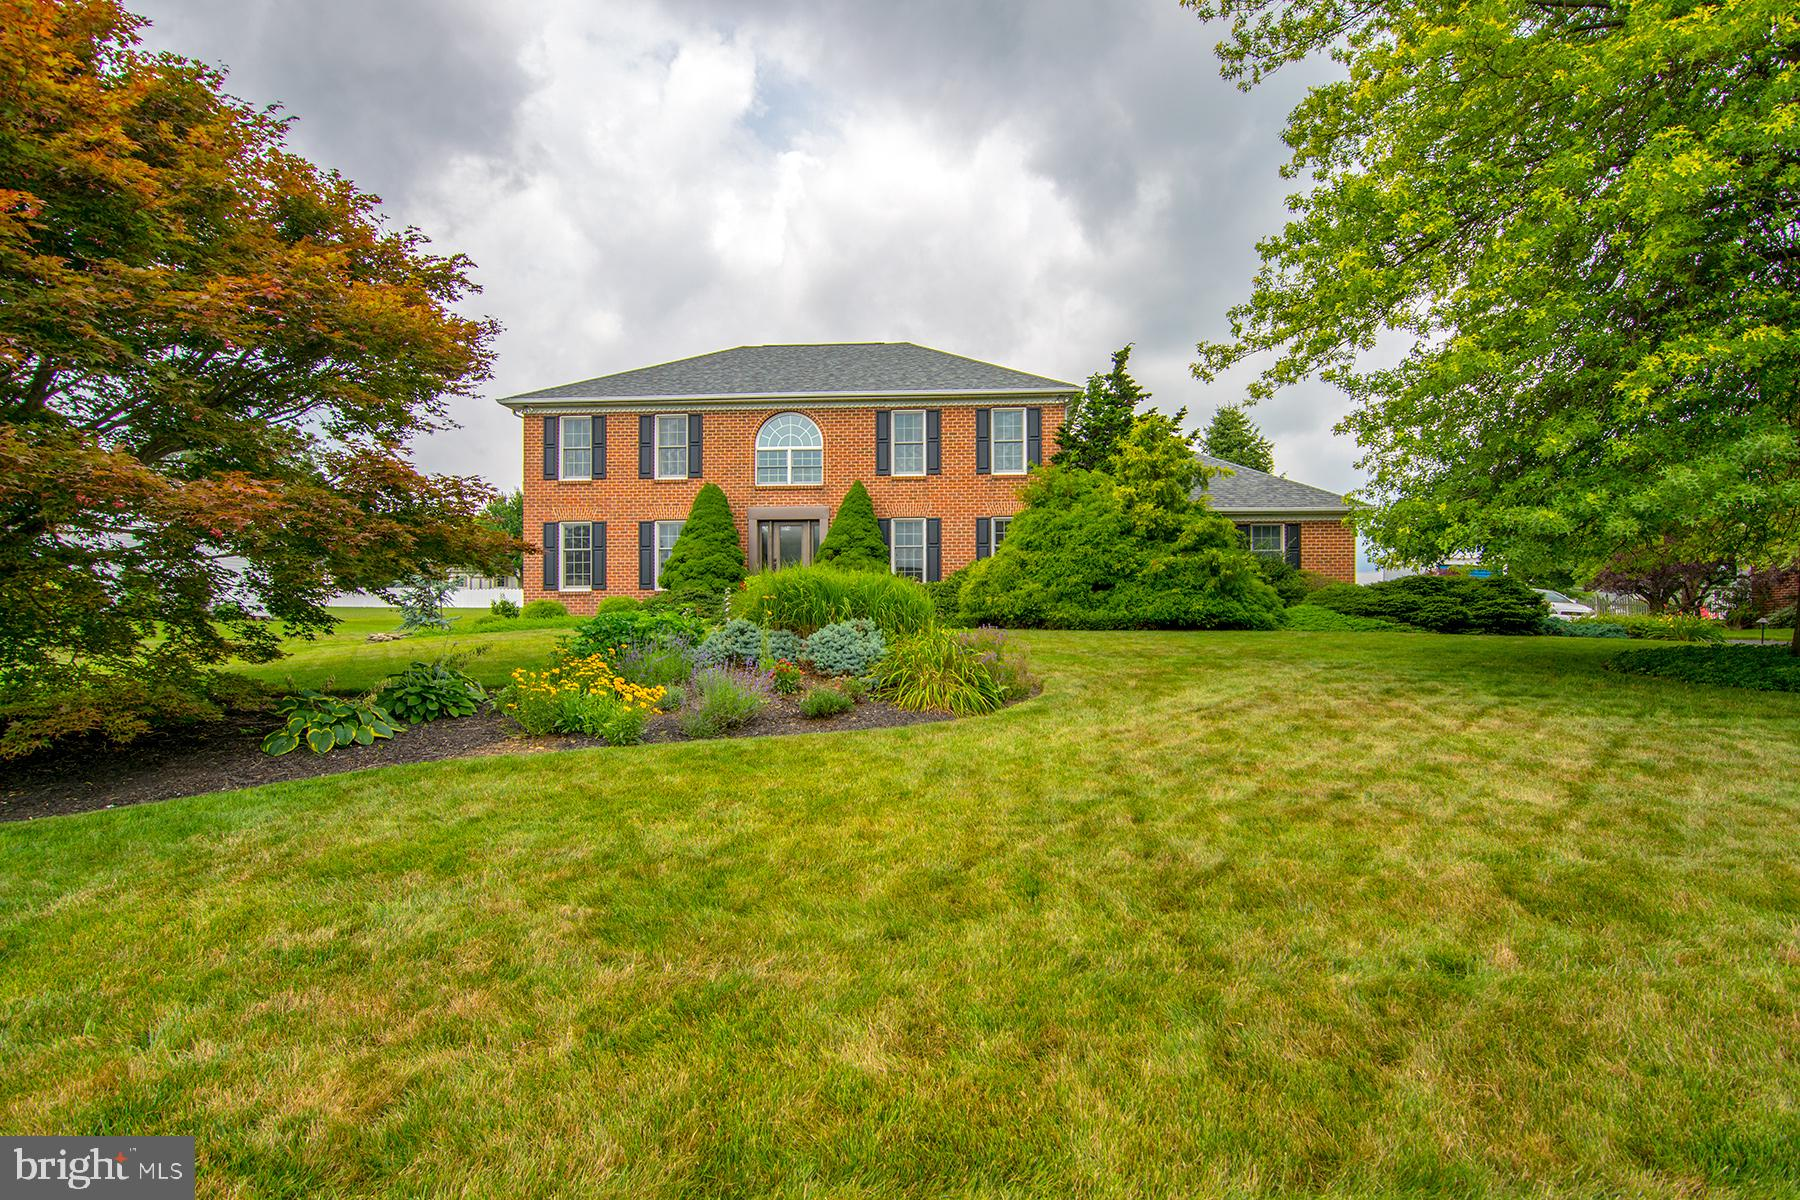 342 CASSIDY WAY, SHREWSBURY, PA 17361